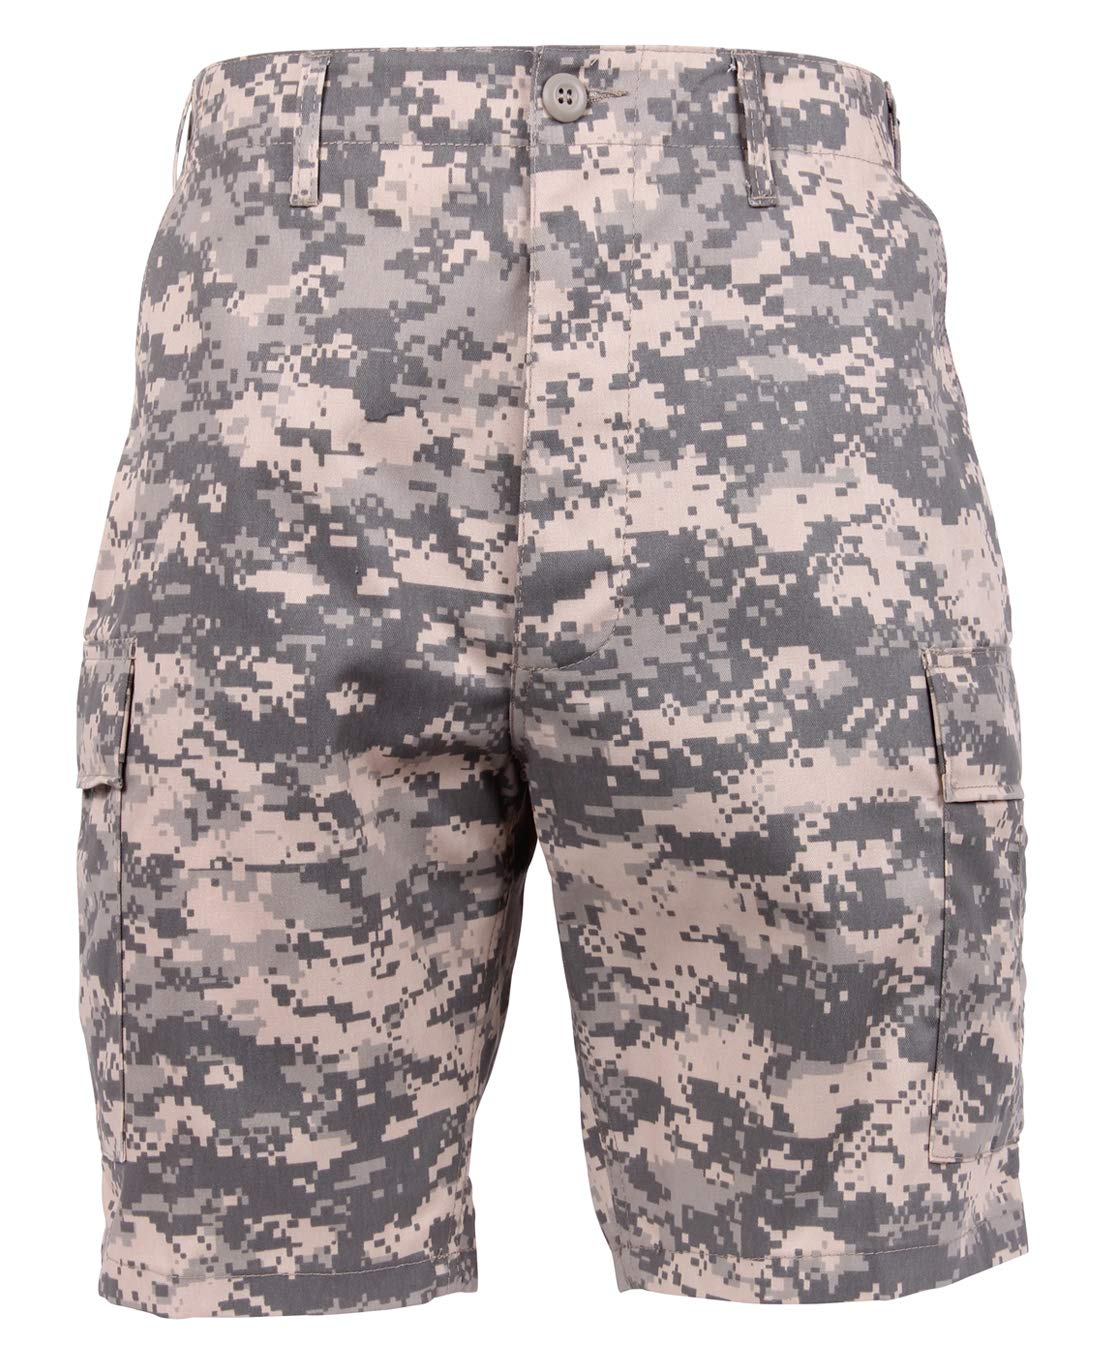 Rothco Digital Camo BDU Shorts, ACU Digital Camo, 3XL